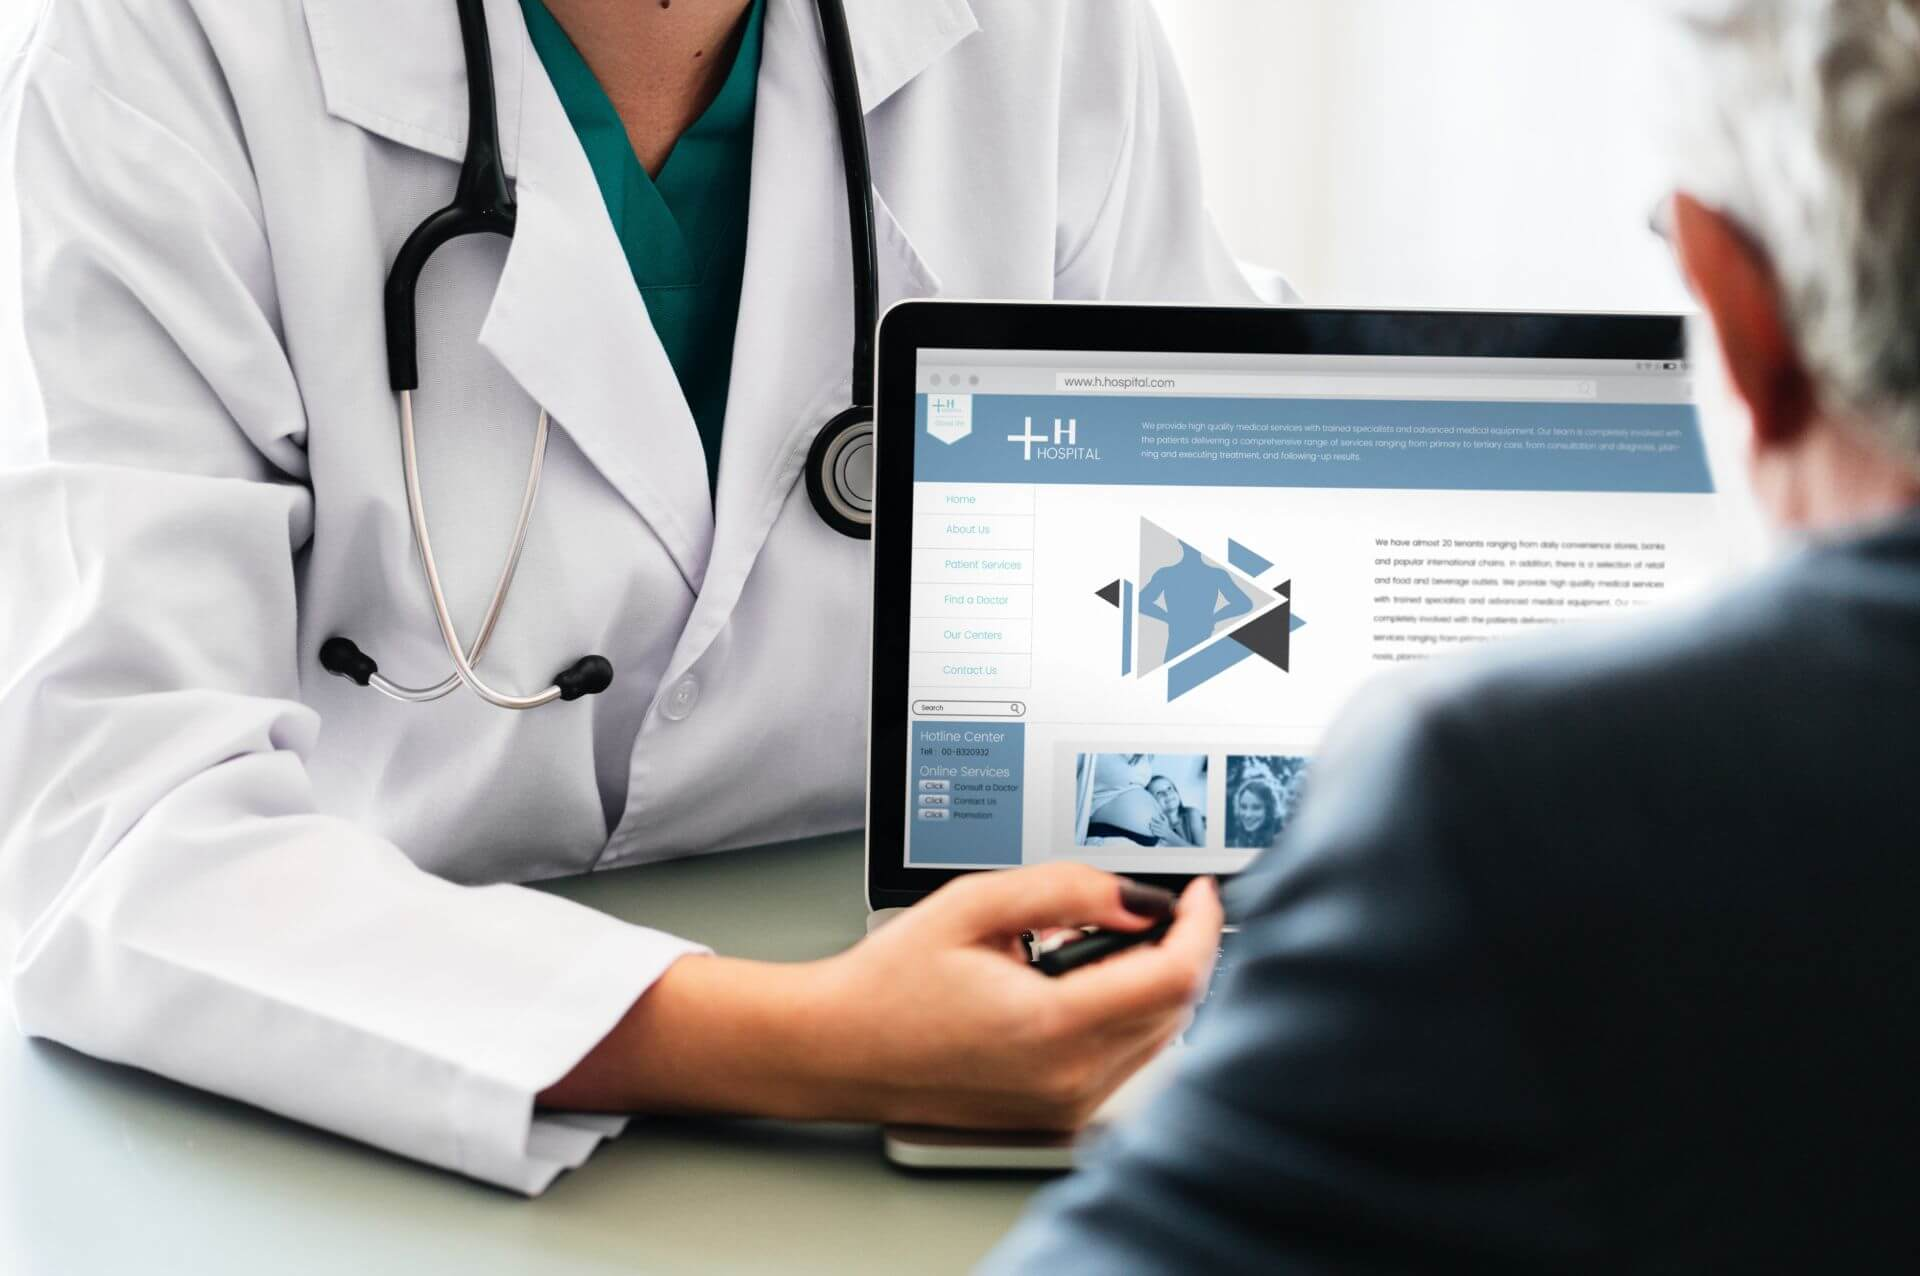 Healthcare provider showing man assessment on laptop